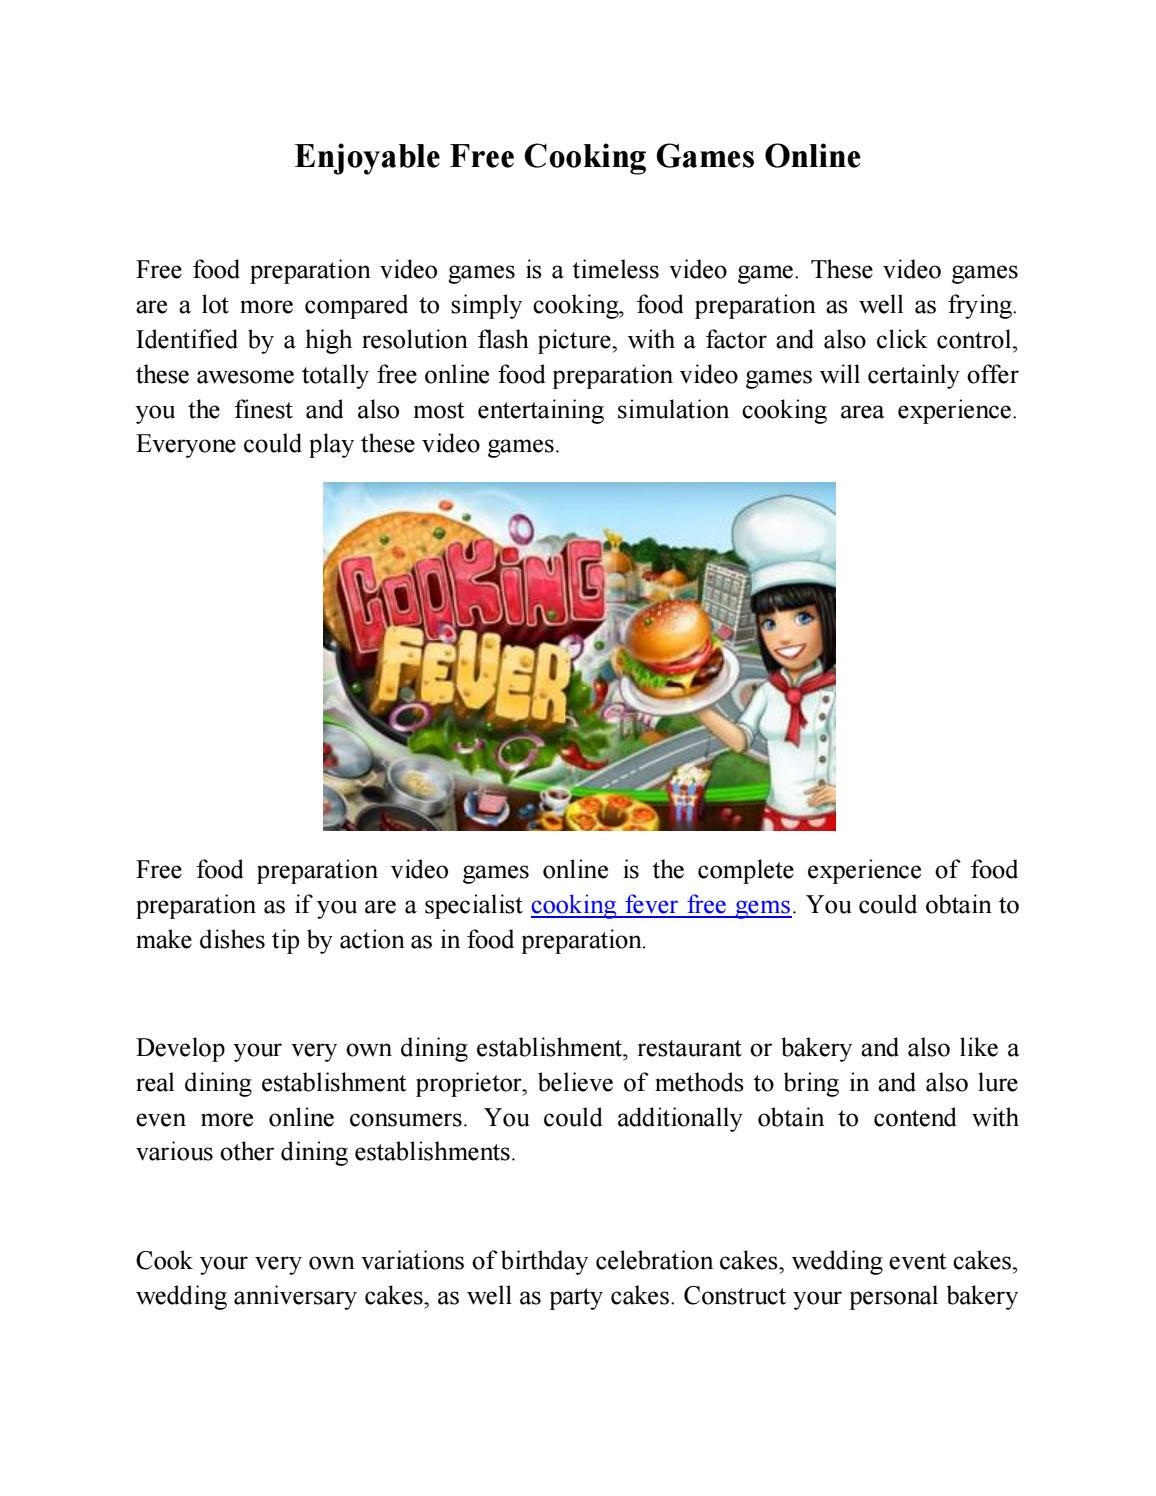 Enjoyable free cooking games online by dalelindsey - issuu